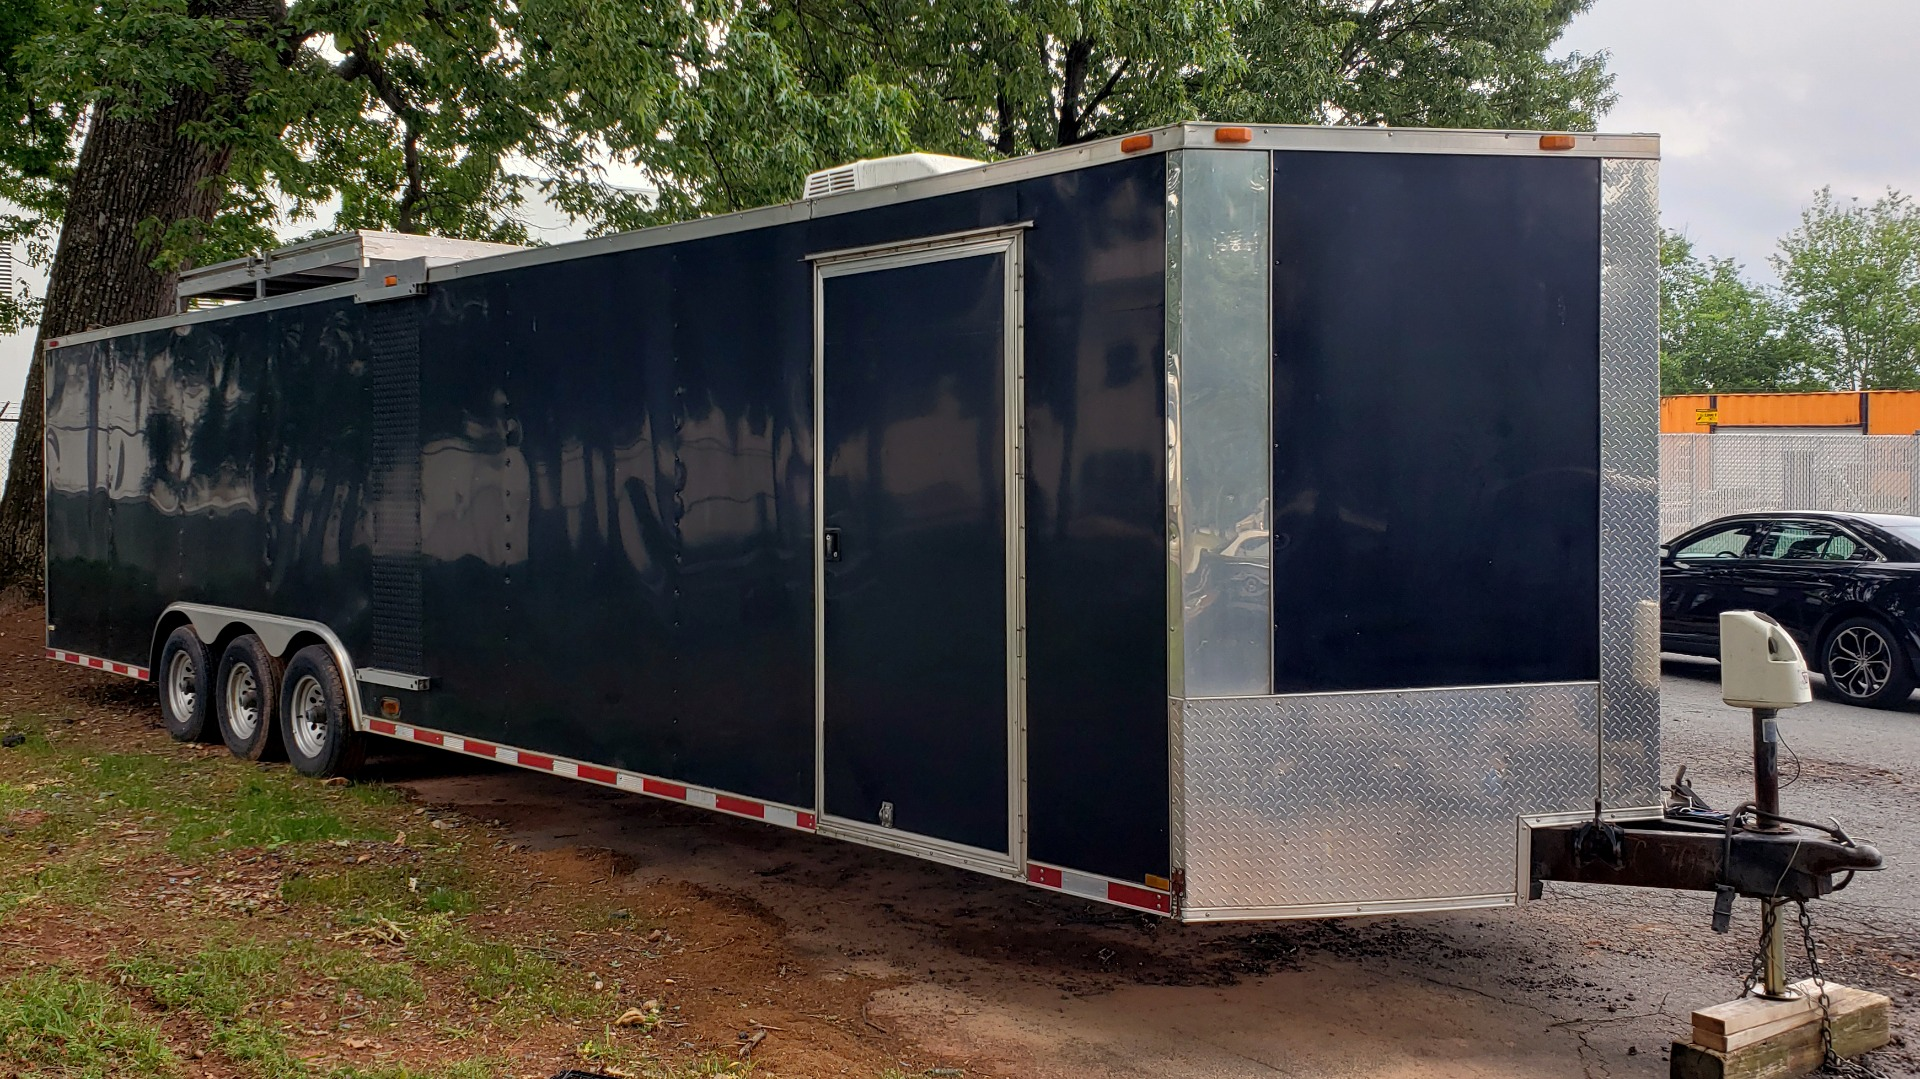 Used 2012 Hurricane 8.5x32 ENCLOSED TRAILER RAMP / AIR CONDITIONING / LOTS OF STORAGE for sale Sold at Formula Imports in Charlotte NC 28227 9